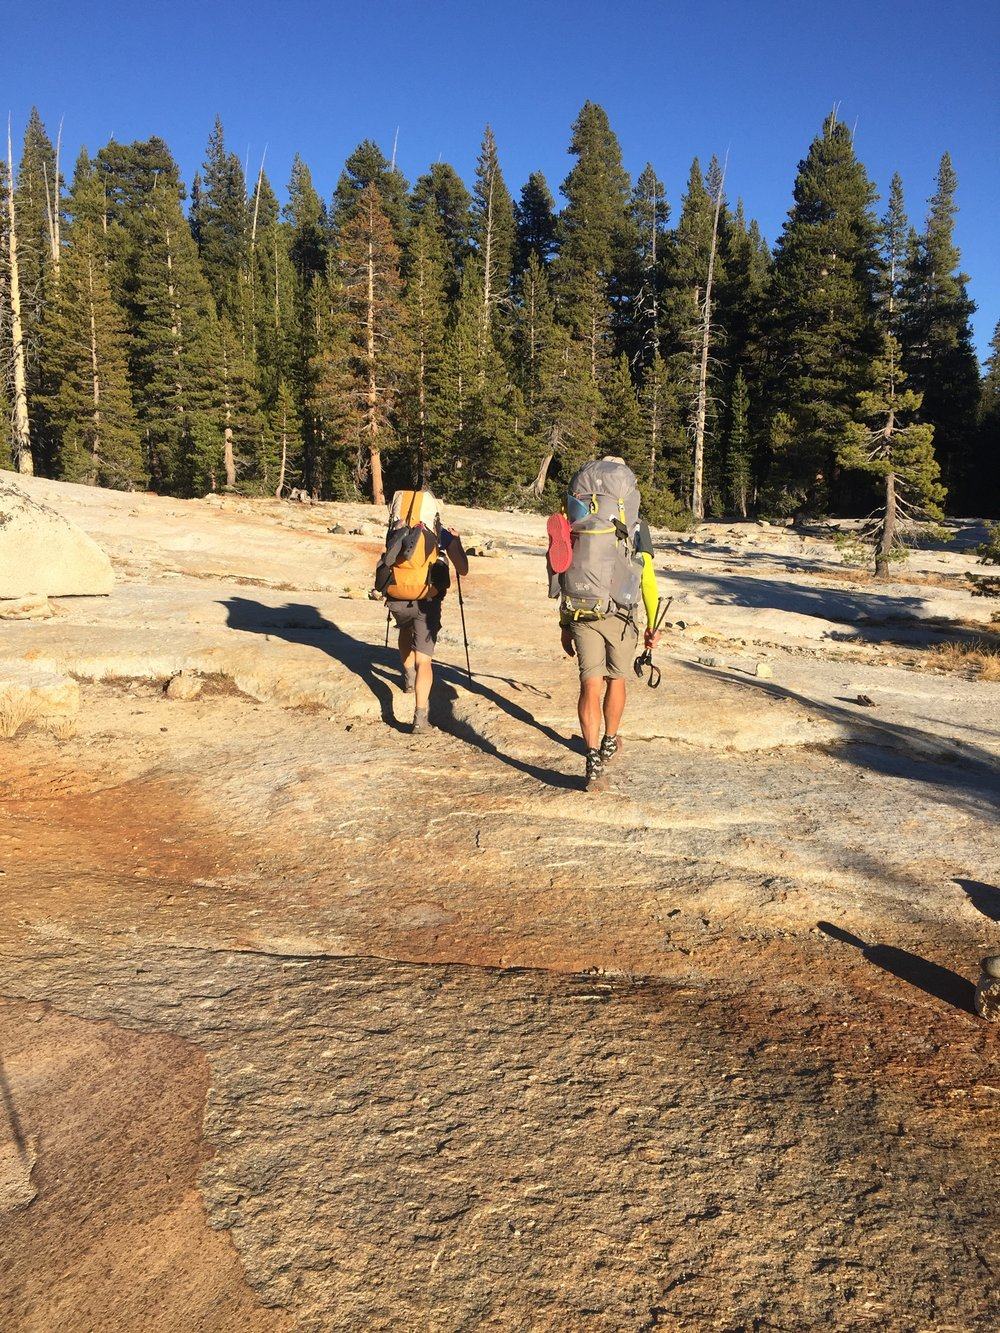 So much granite as we near Tuolumne Meadows in the late afternoon (Cookie & Macro)